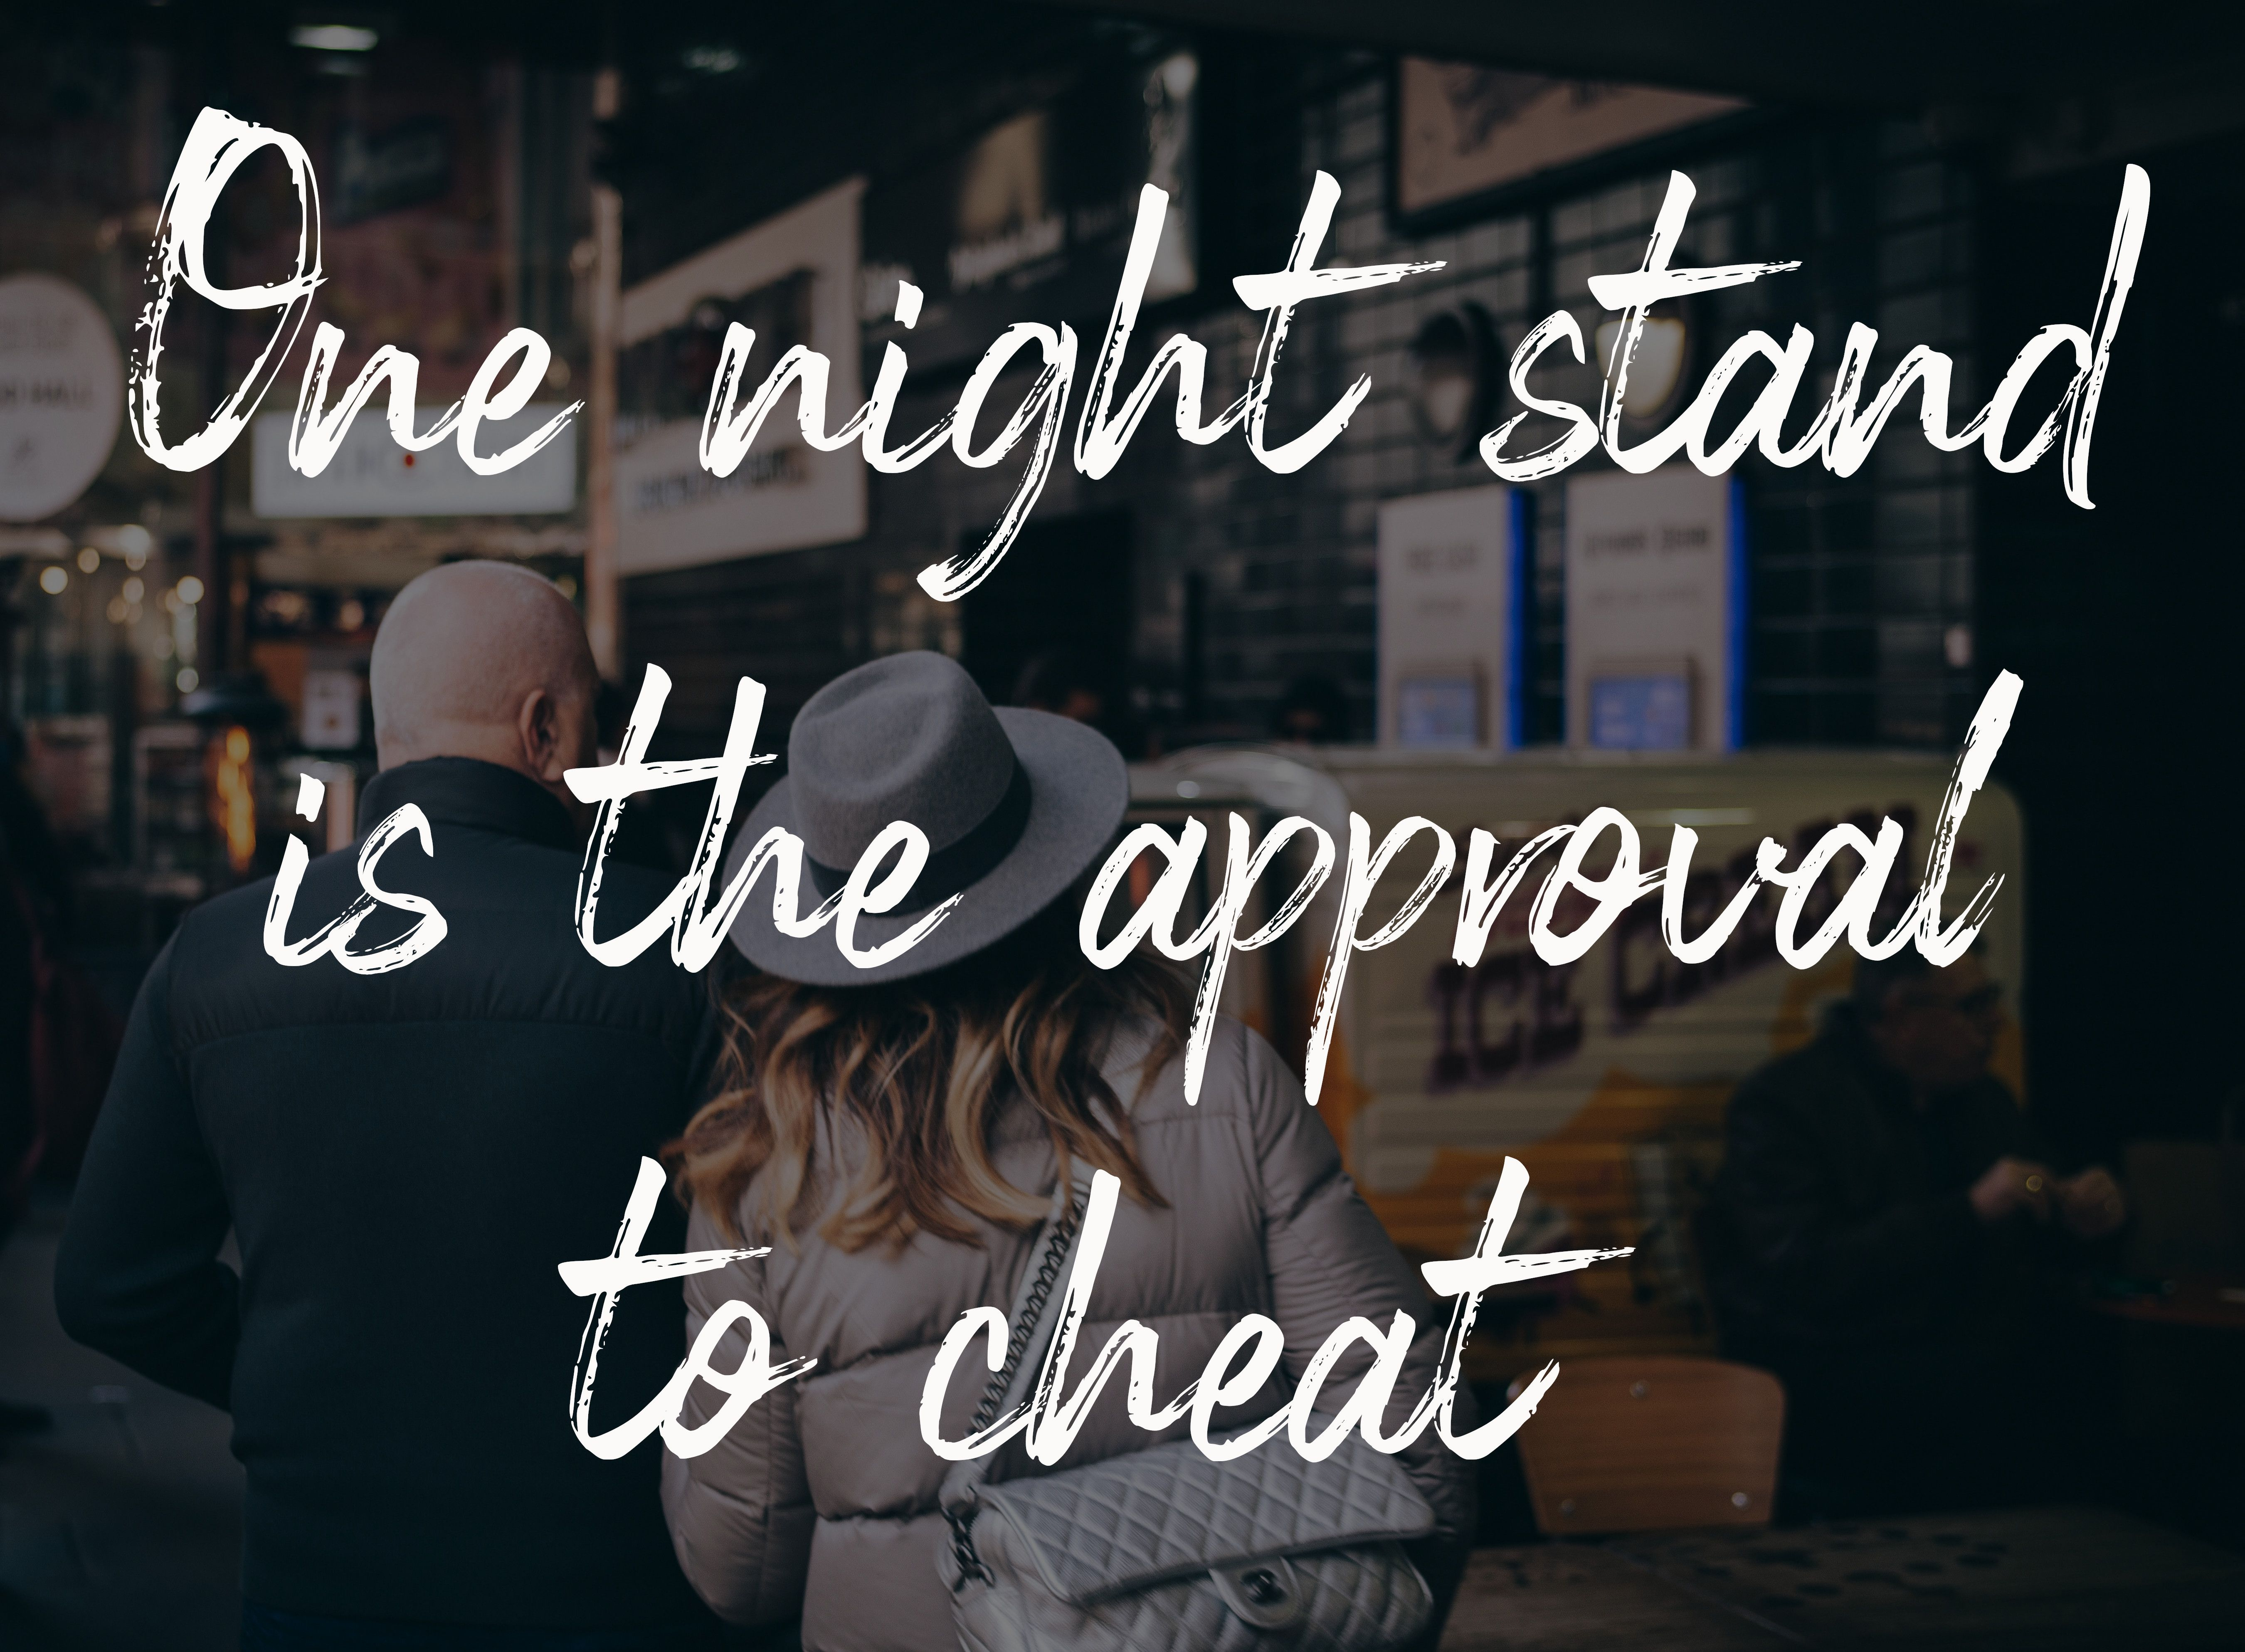 One Night Stand Cheating 16 Mods for Better Romance